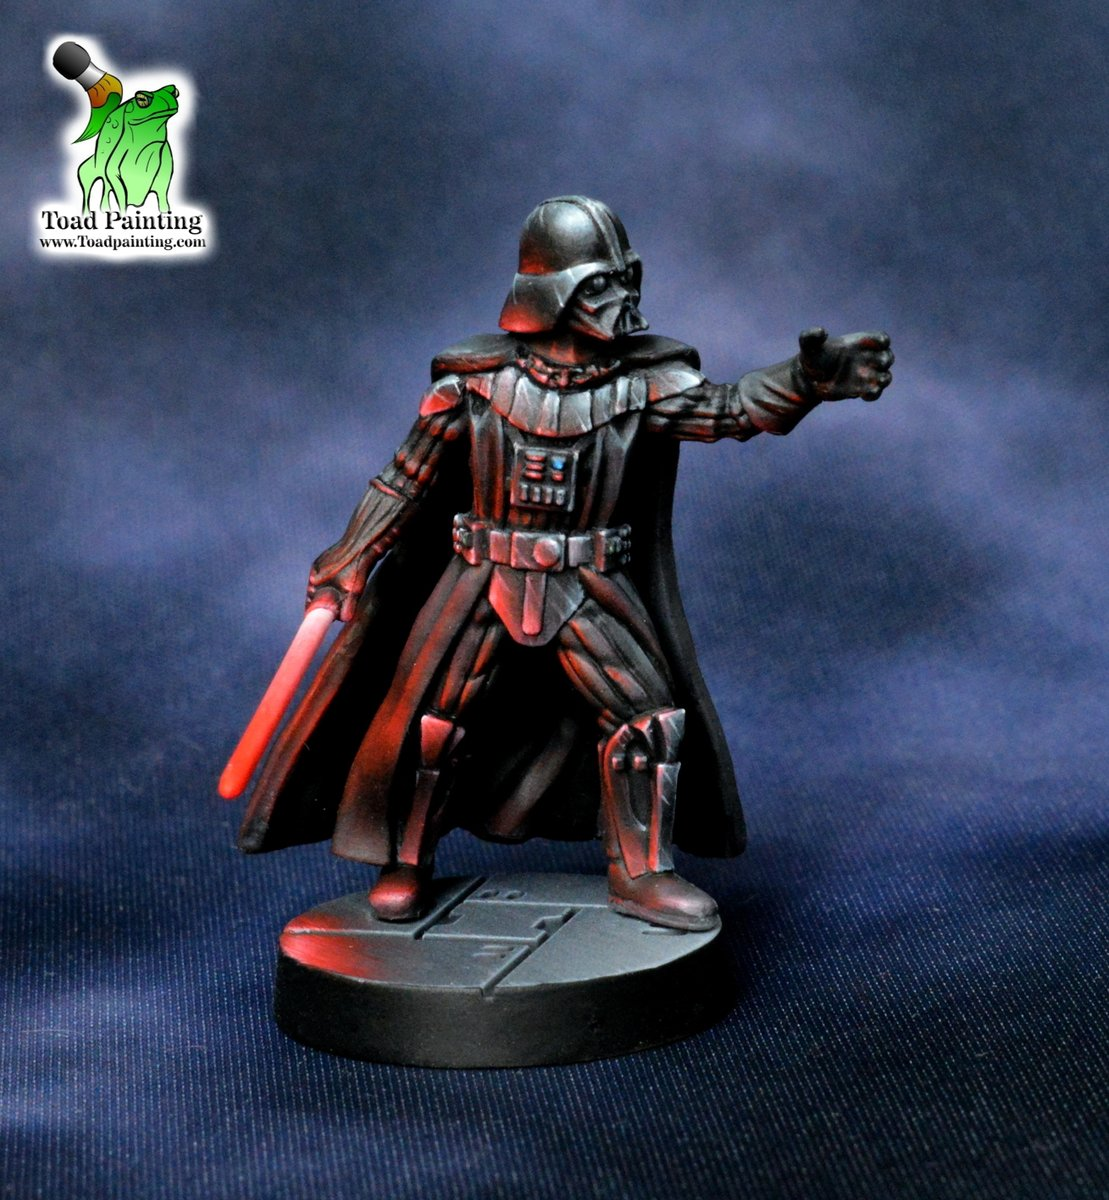 May the 4th be with you! Here's Darth Vader from #StarWarsLegion A few changes from my previous WIP post, namely the lightsaber brightness is switched on advice from a few people. #minipainting #miniaturepainting #miniatures #StarWars  #Warmongers https://t.co/8RPWHfHt2g